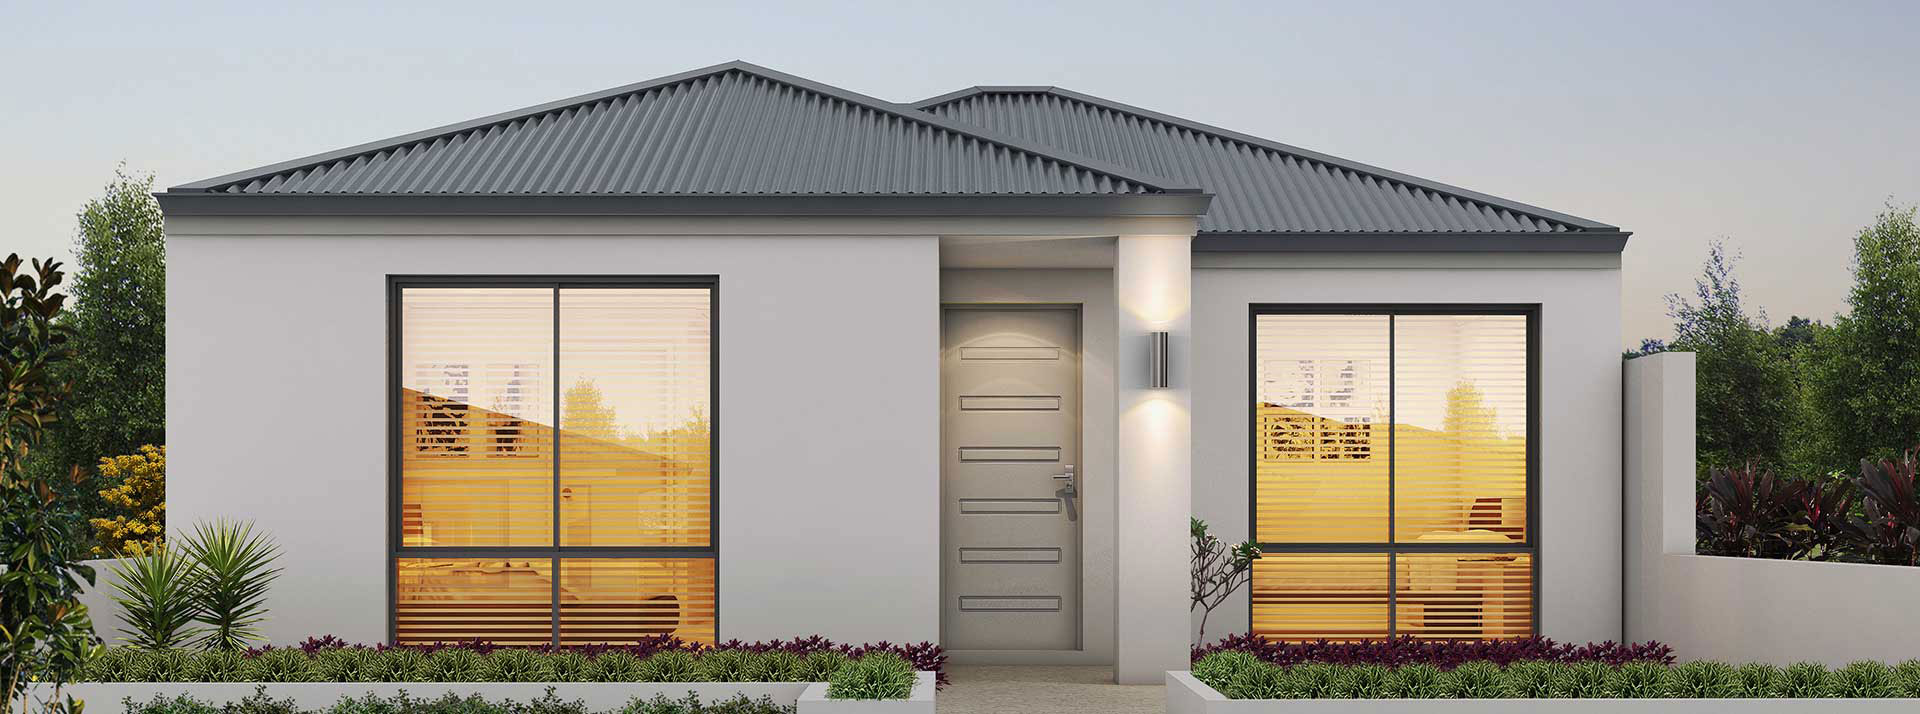 "House frontage of single storey home design ""My Davenport"""